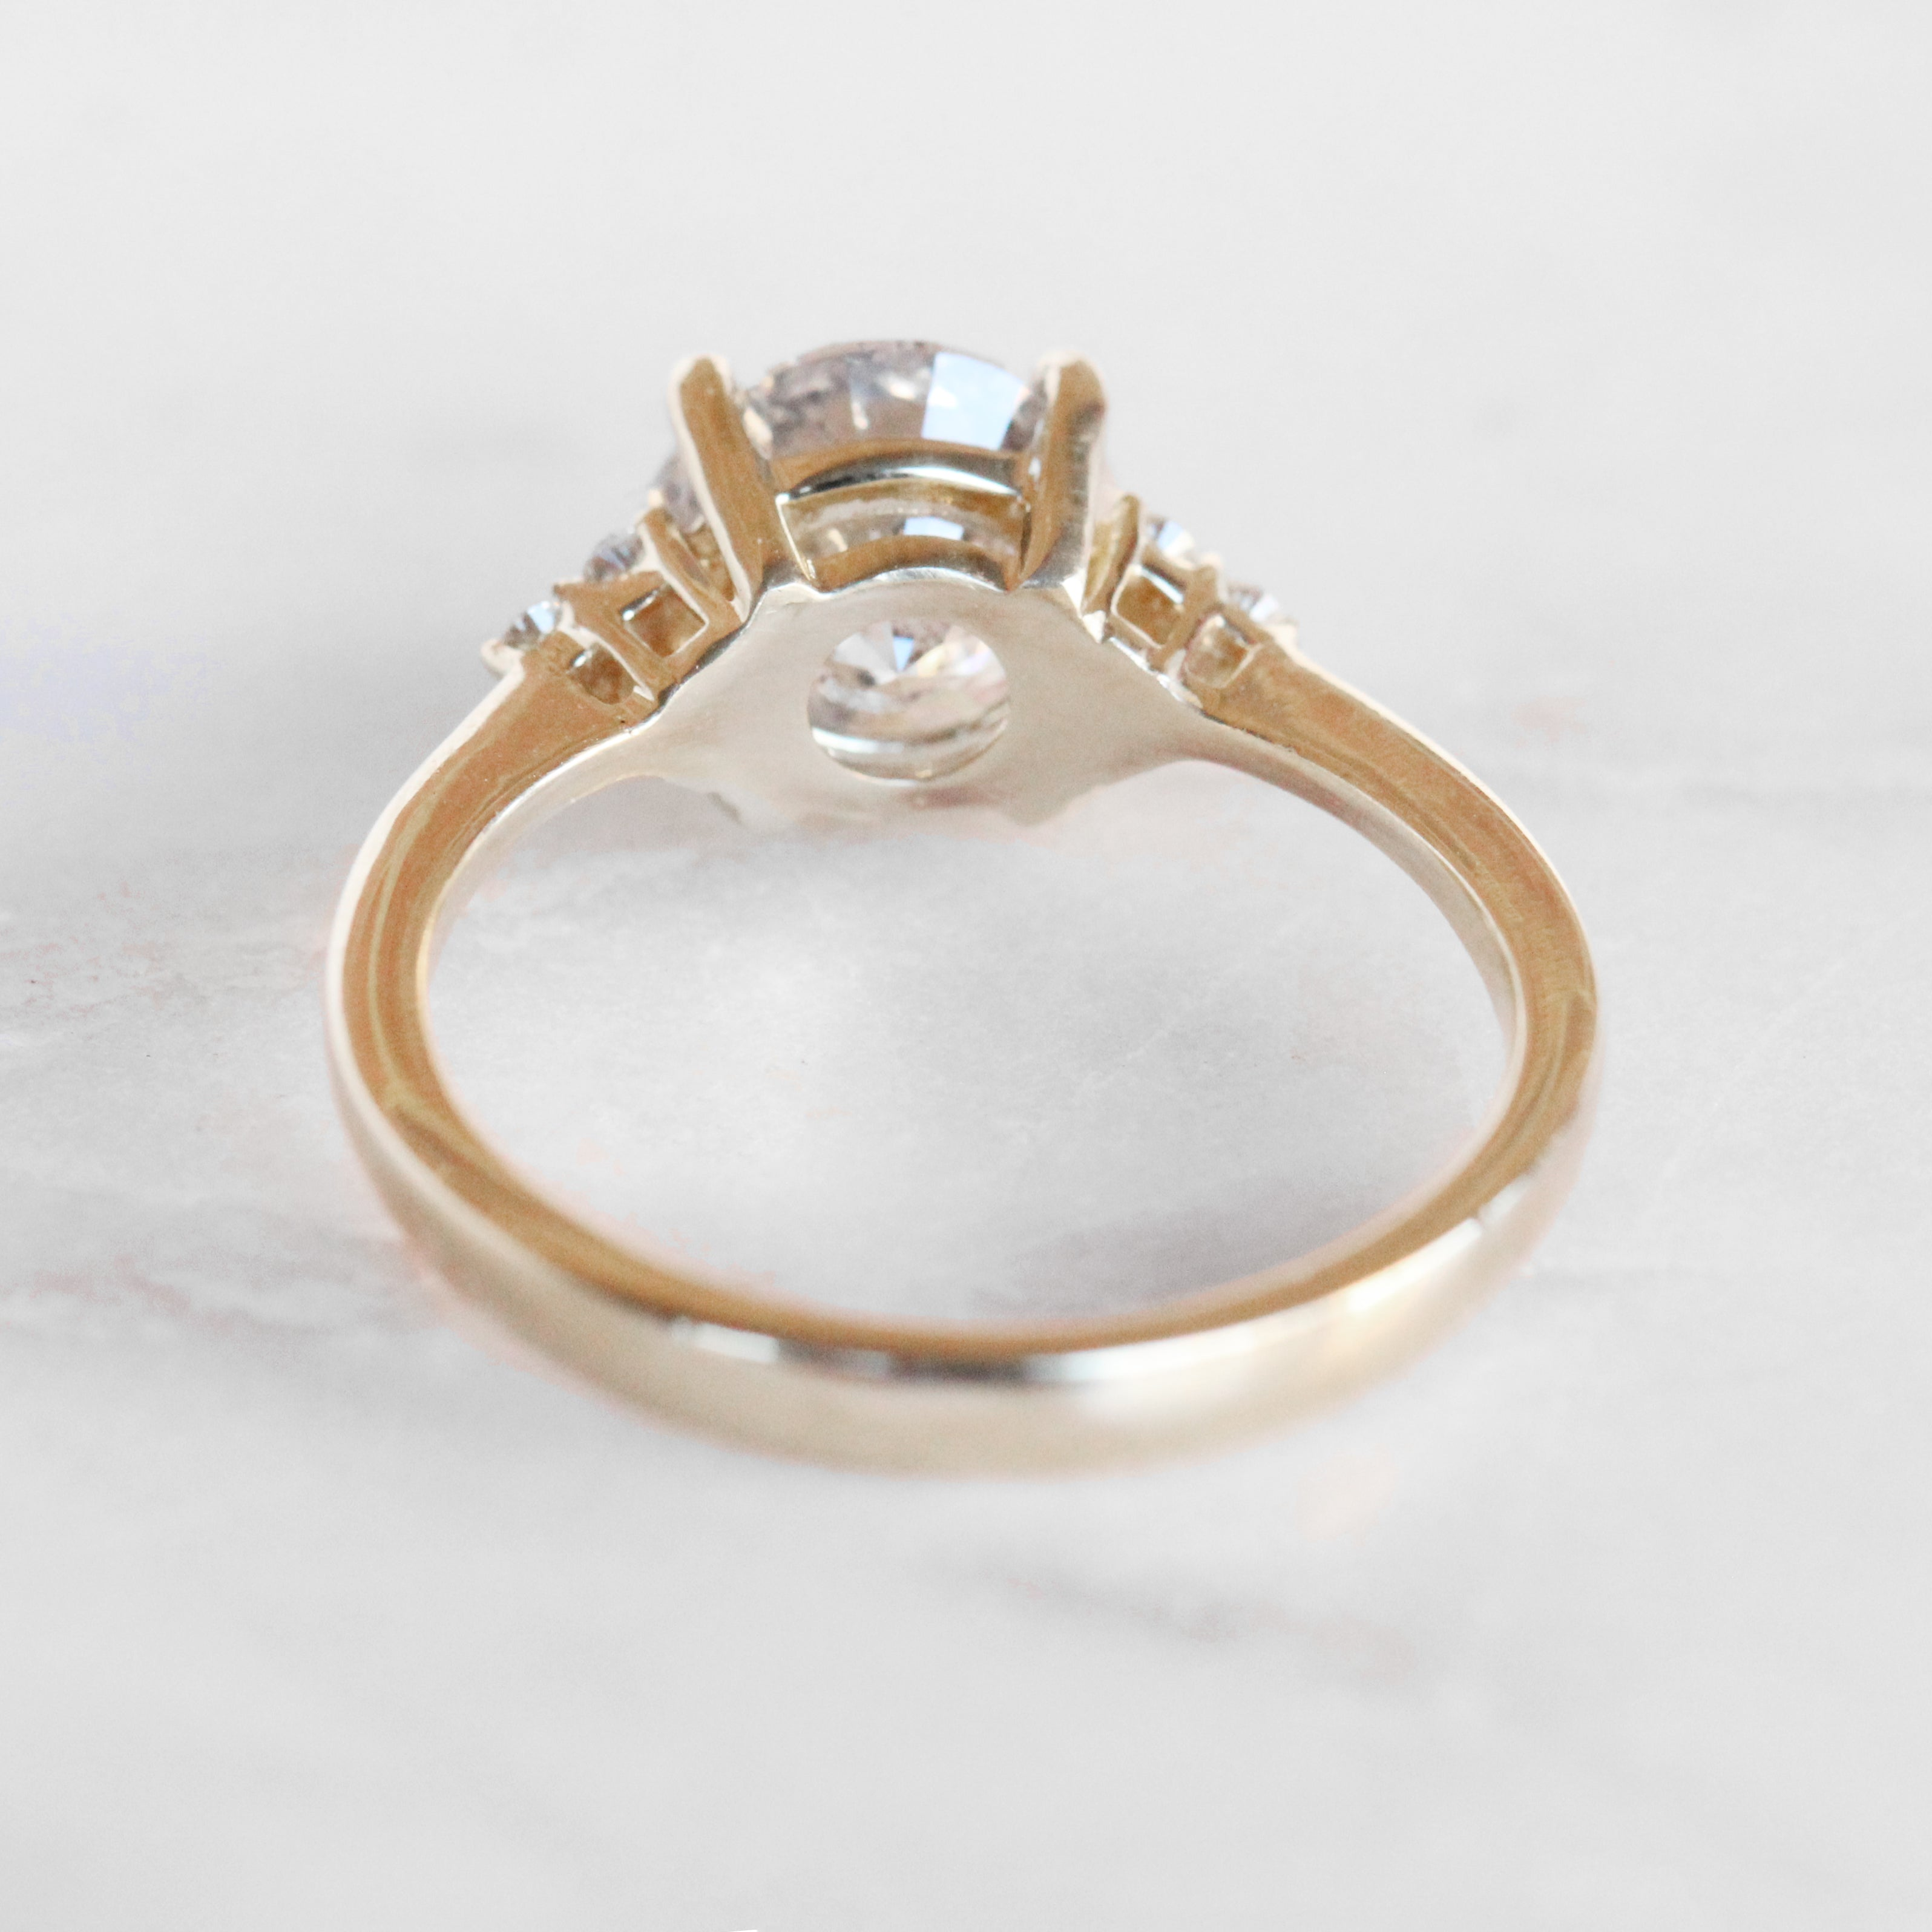 Imogene Ring with a 2.01 Carat Celestial Diamond in 14k Yellow Gold - Ready to Size and Ship - Midwinter Co. Alternative Bridal Rings and Modern Fine Jewelry